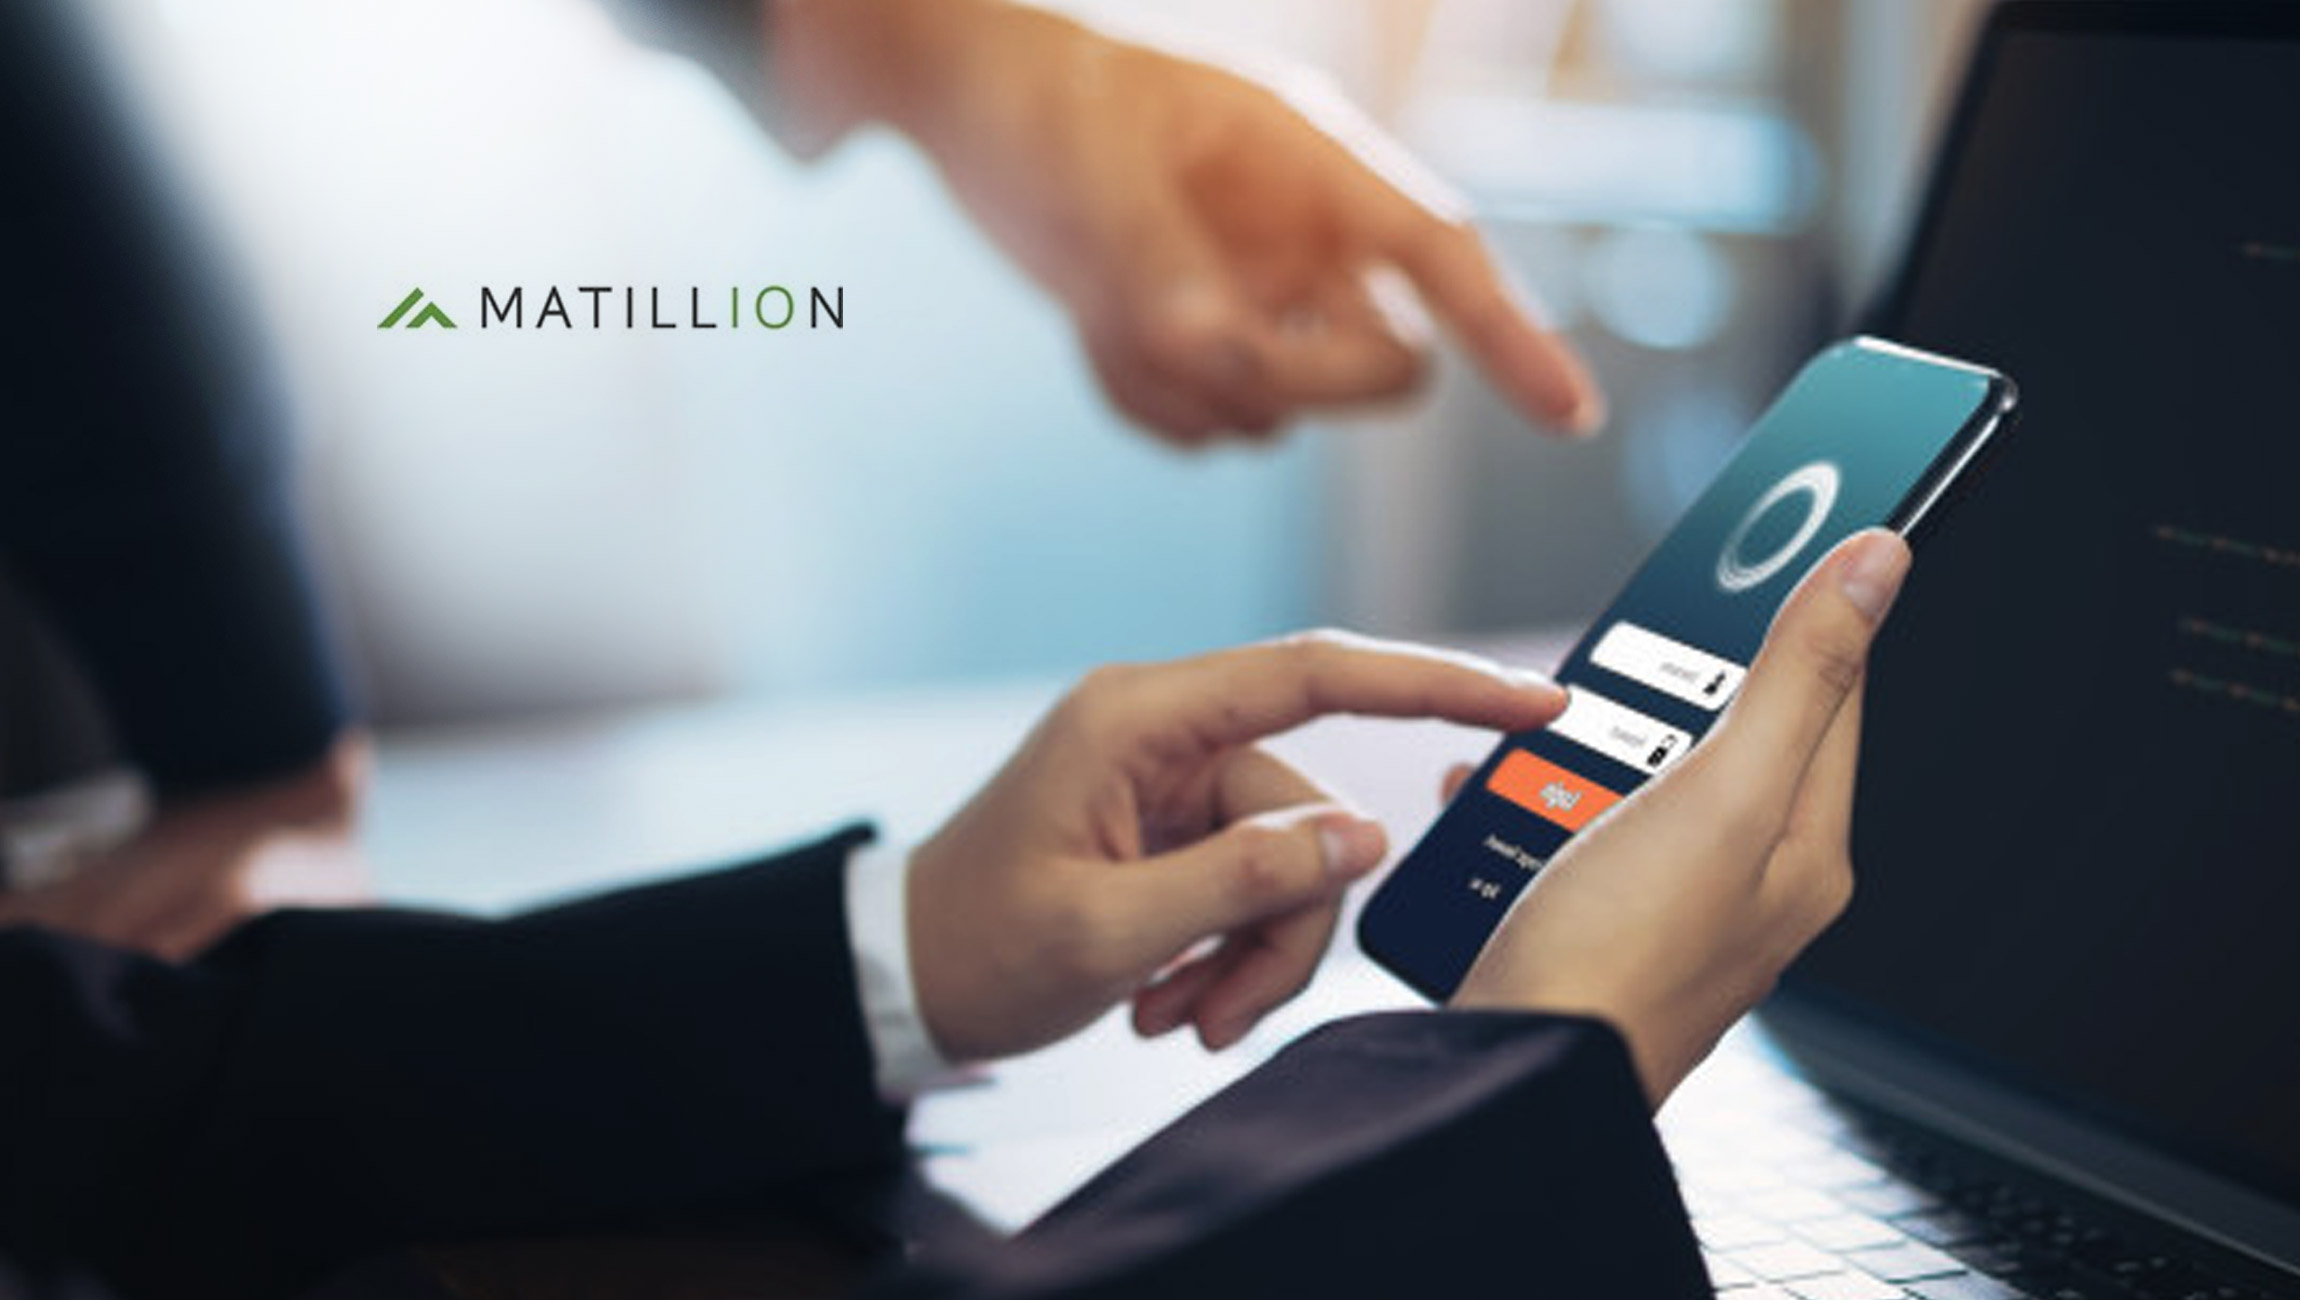 Matillion Appoints Kenneth Paqvalen as Chief Financial Officer